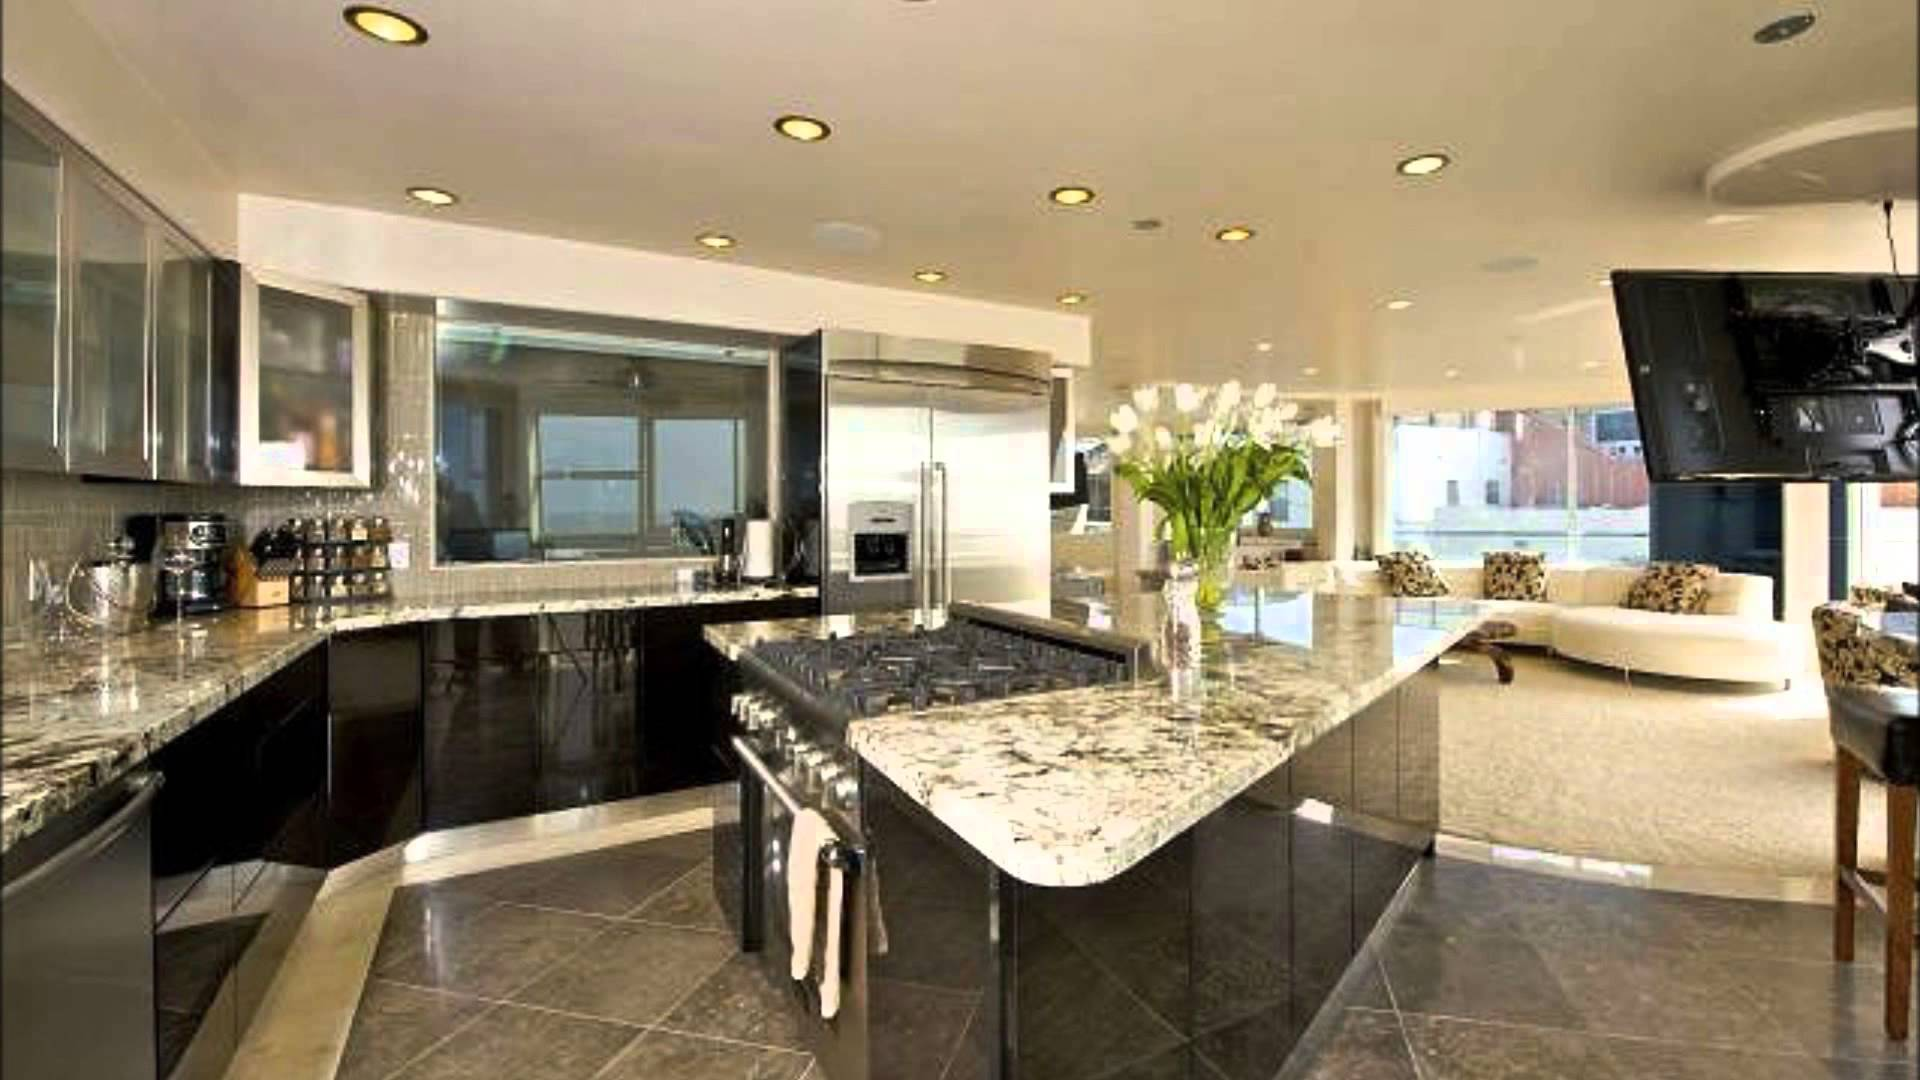 Design your own kitchen ideas with images for Plan your kitchen